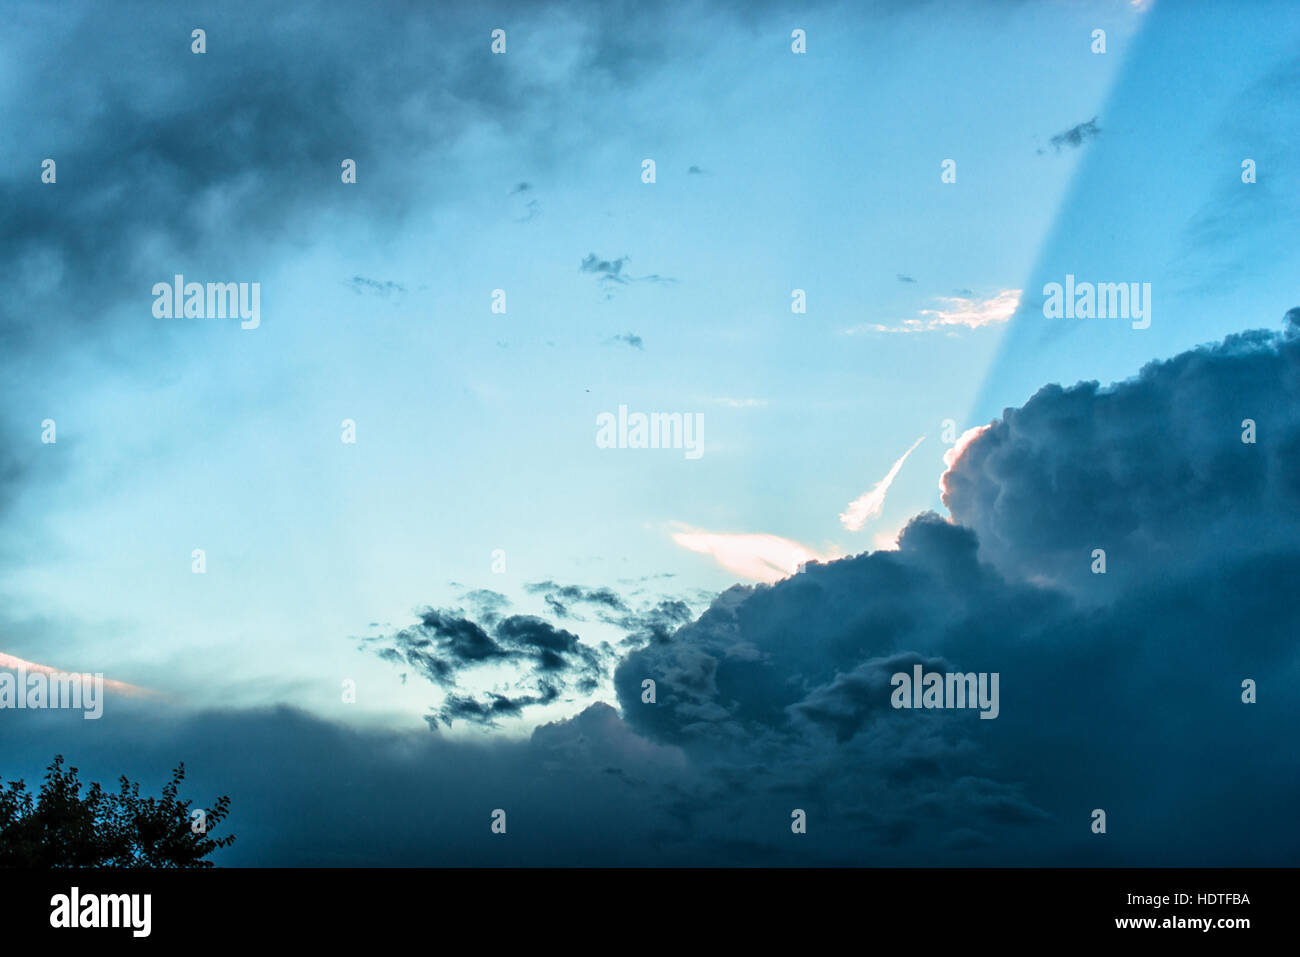 Dramatic clouds - Stock Image